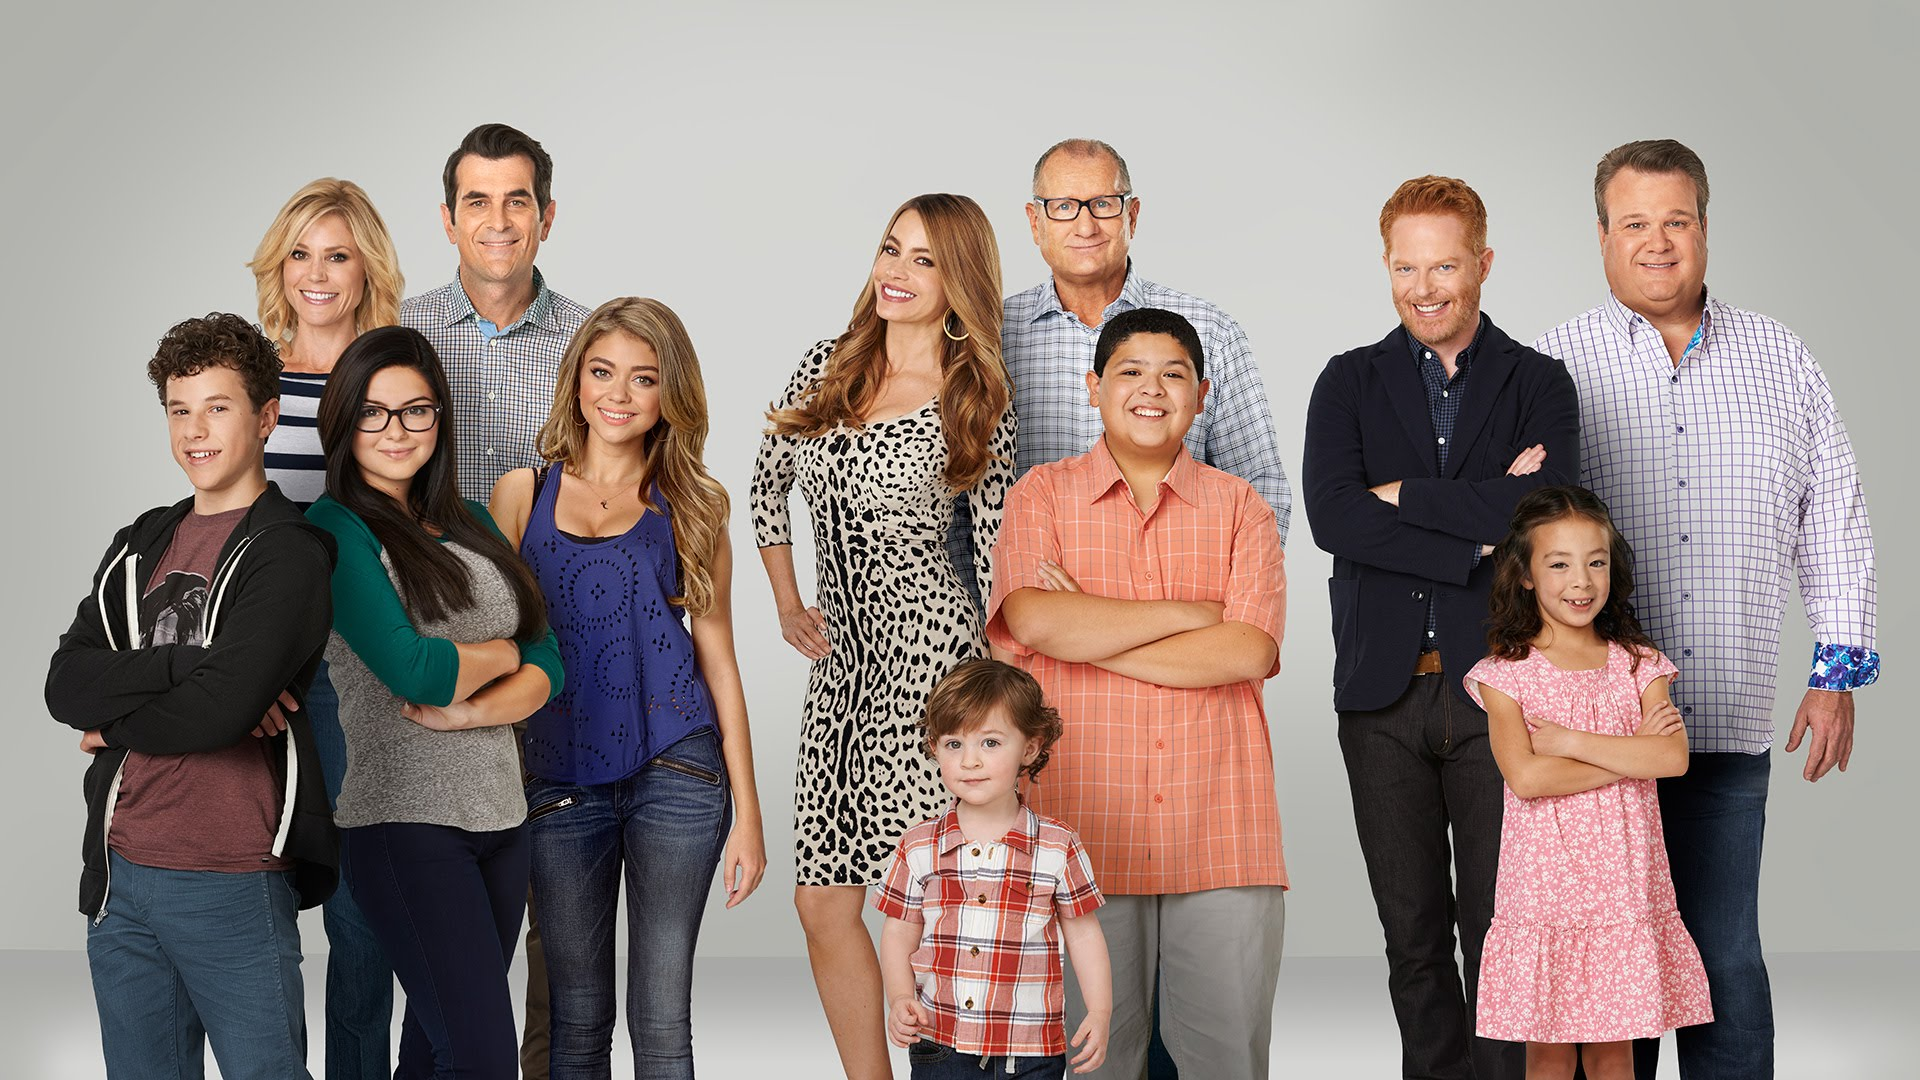 The cast of Modern Family stand in front of a white background